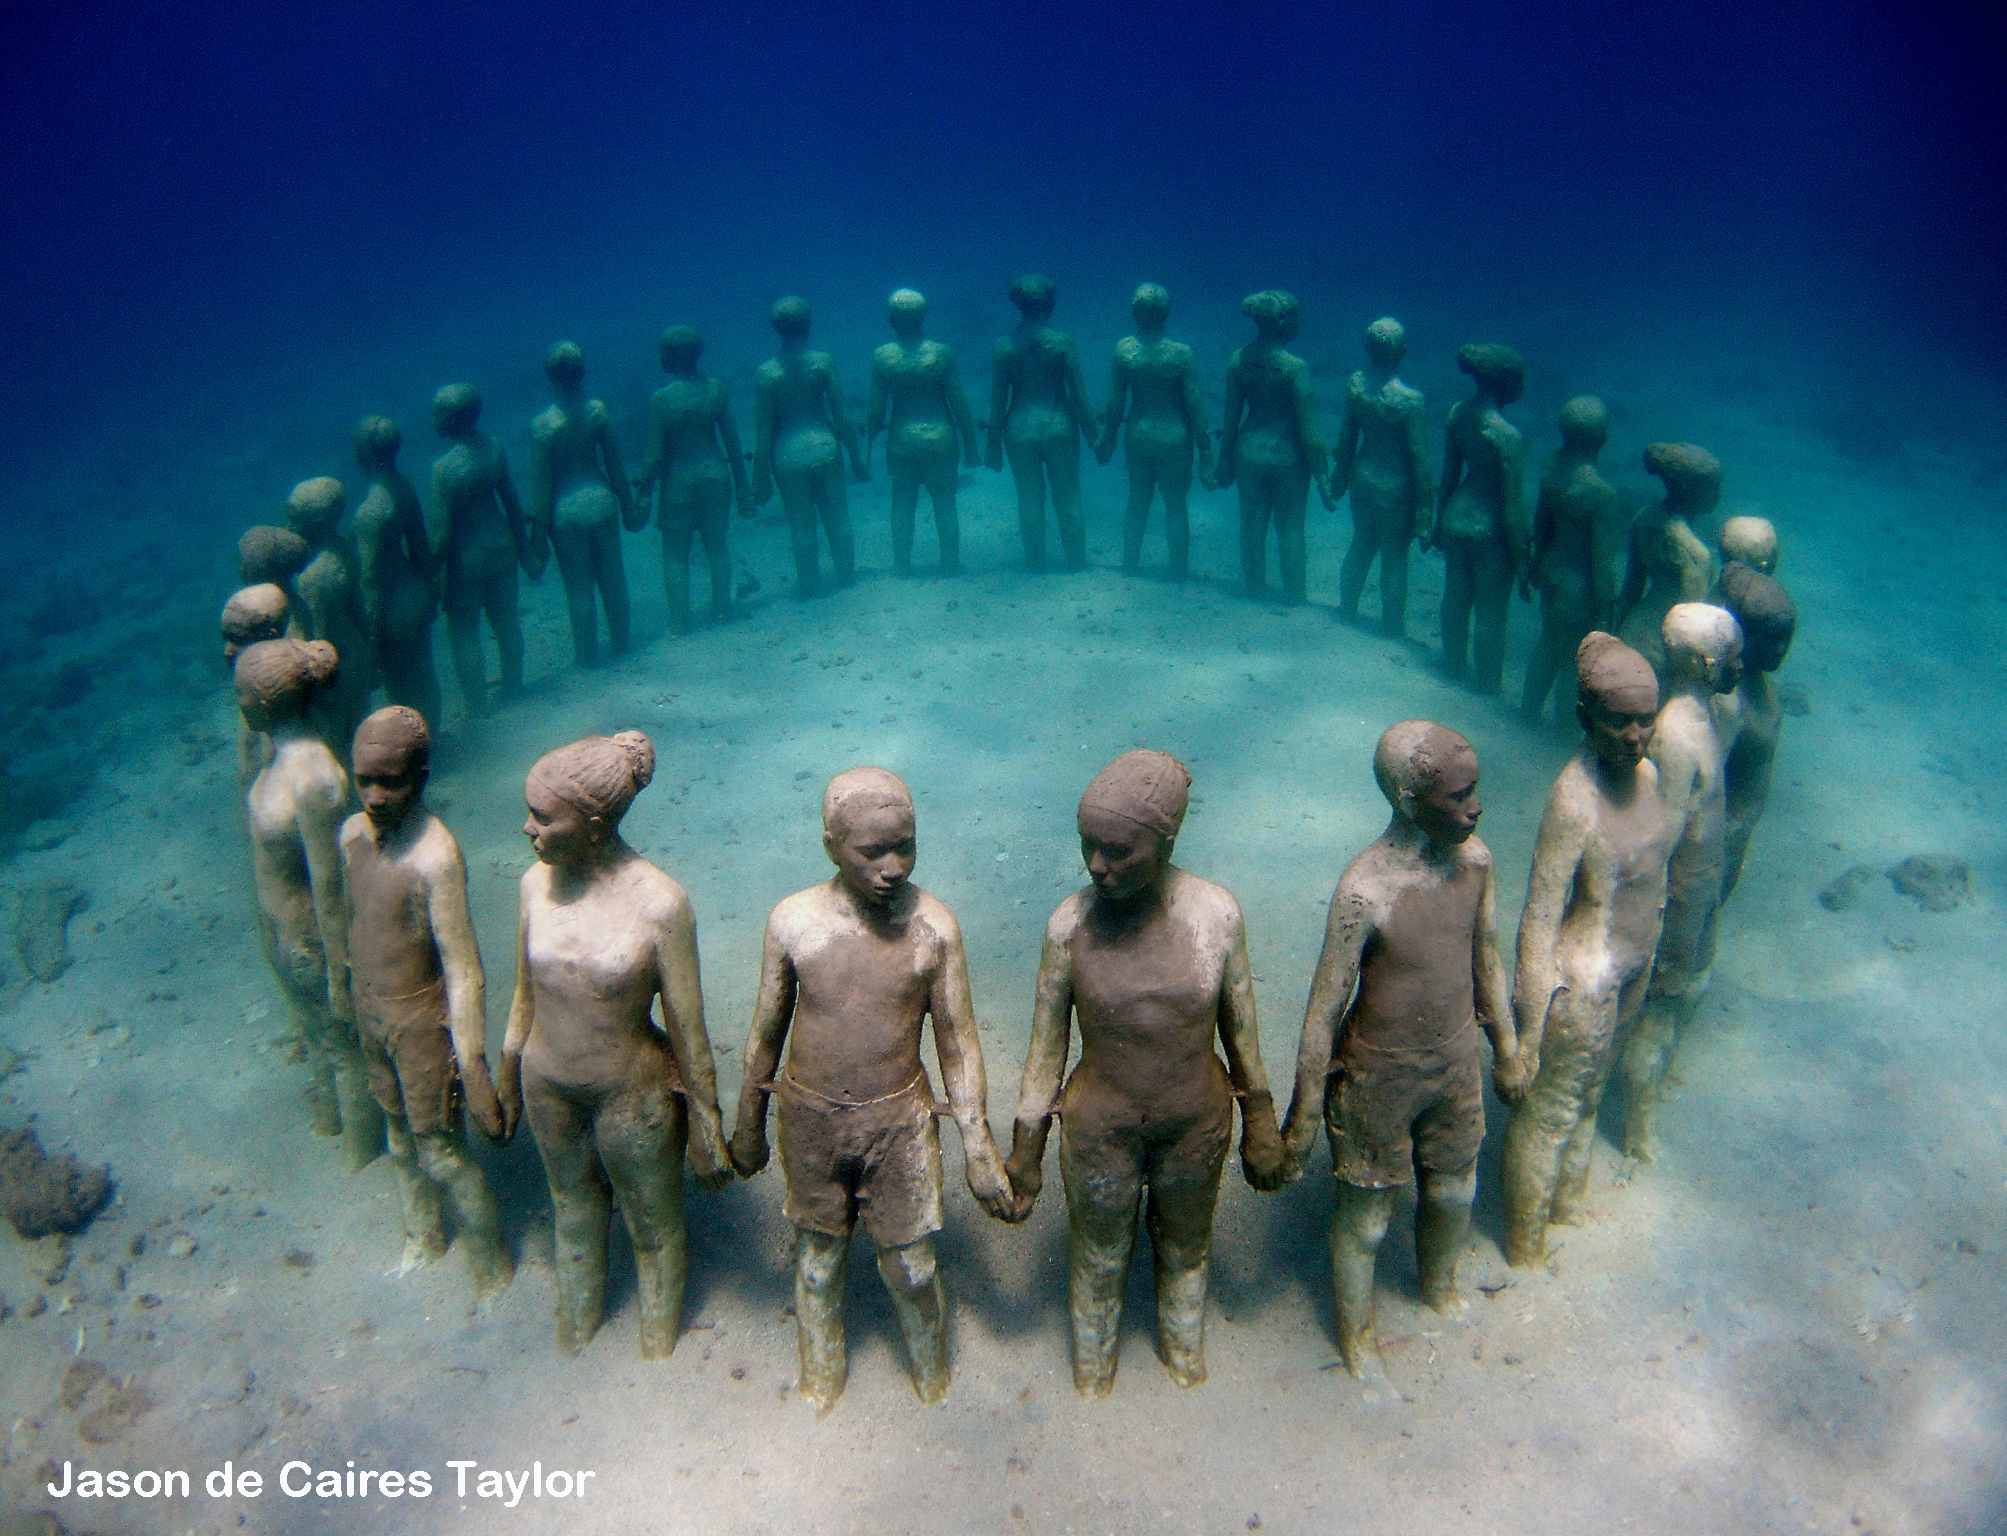 Photo © Jason deCaires Taylor | Underwater Sculpture Park in Grenada